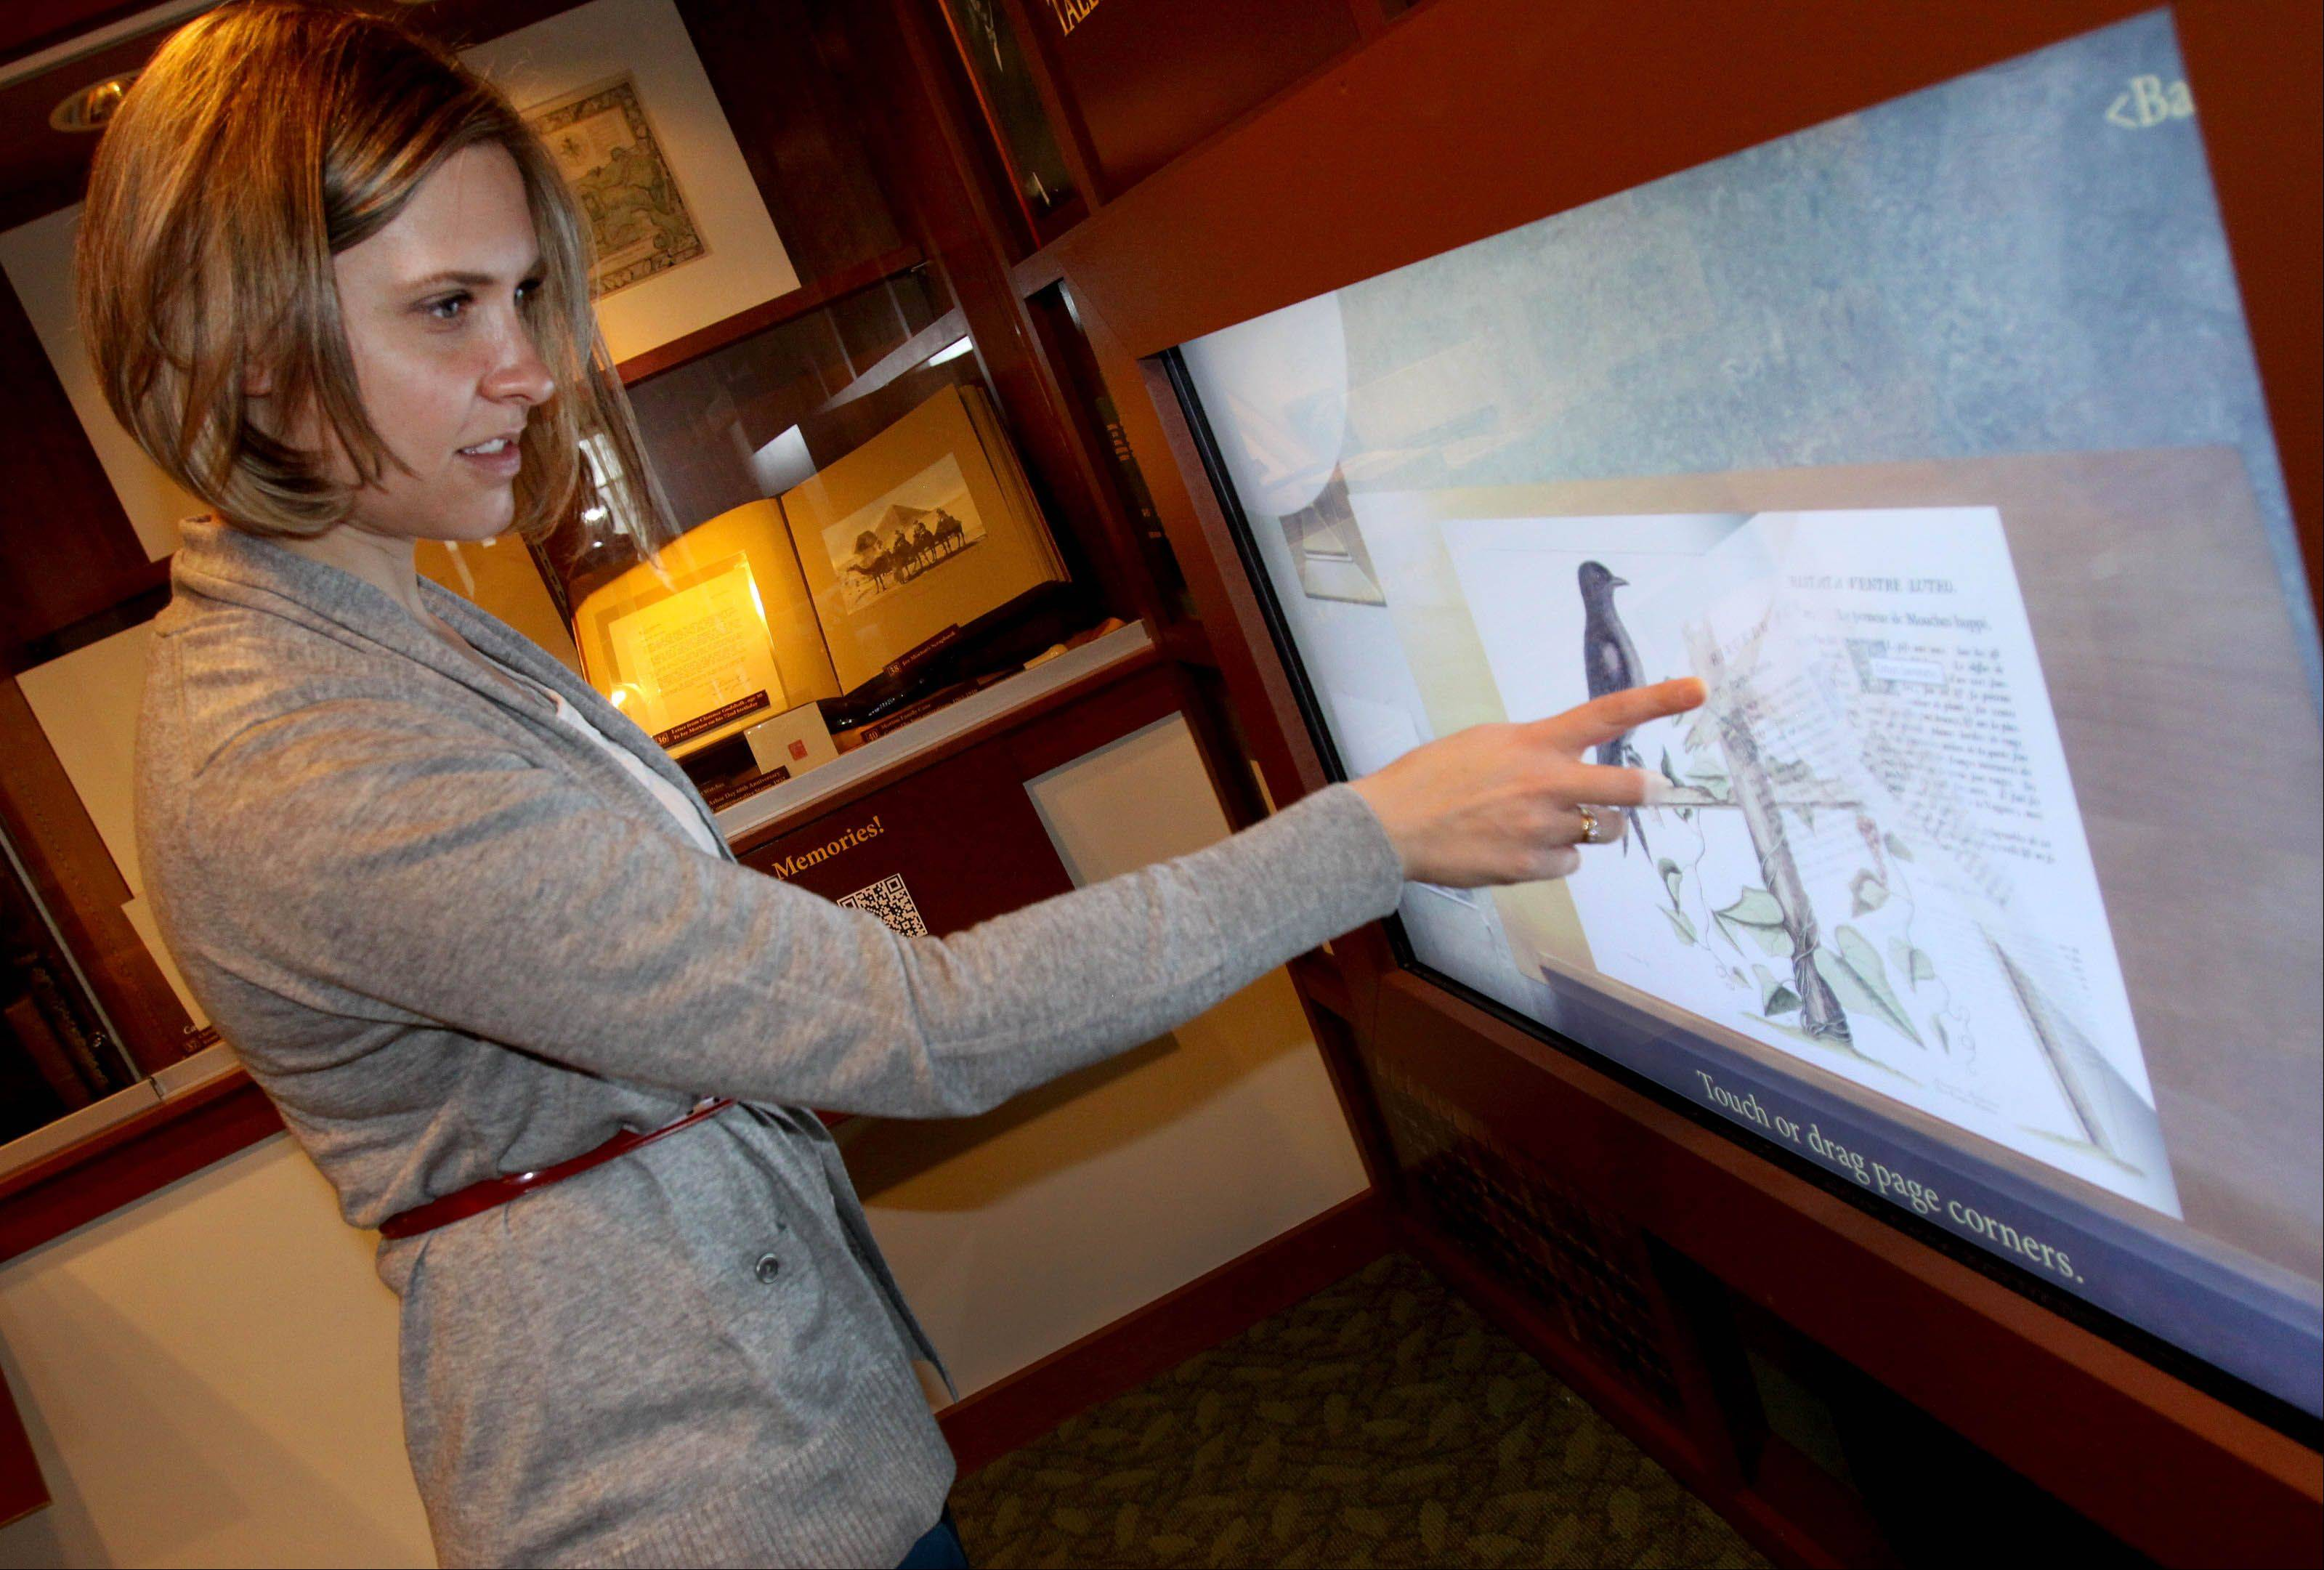 Sarah Clark, public relations specialist for Morton Arboretum, demonstrates how books that are too fragile to be handled can be paged through on a touch screen.